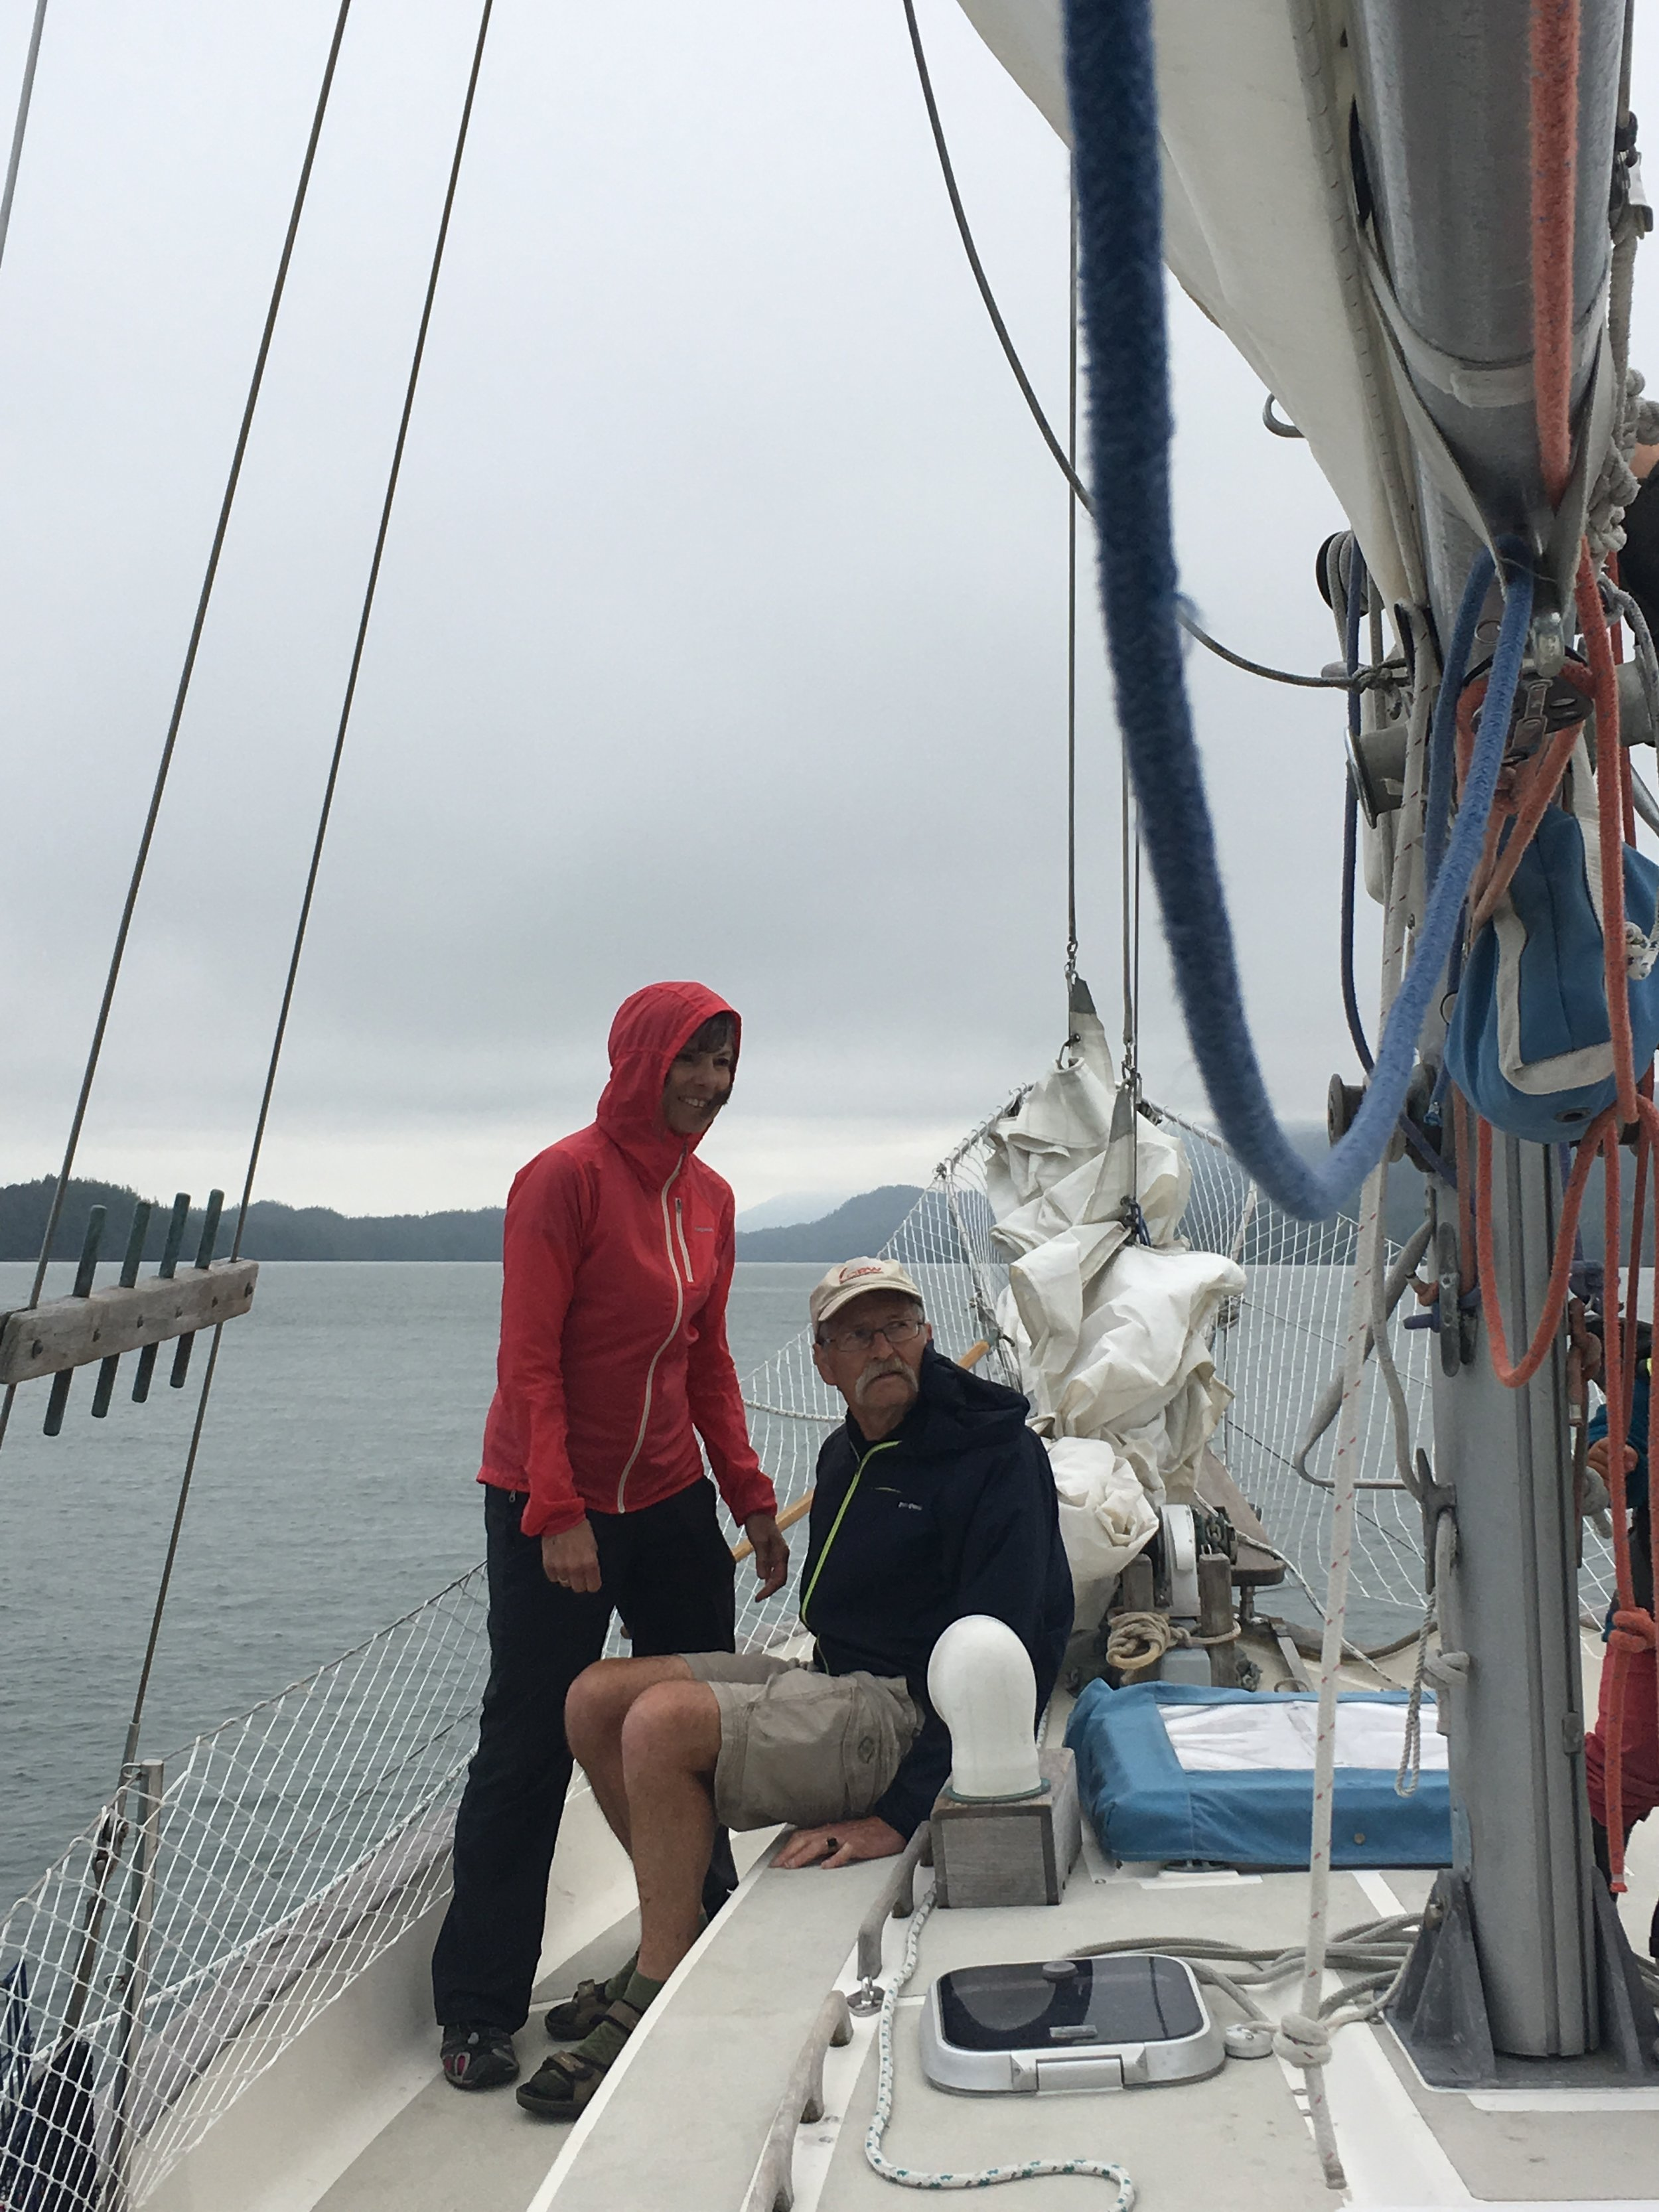 Sailing with my parents.